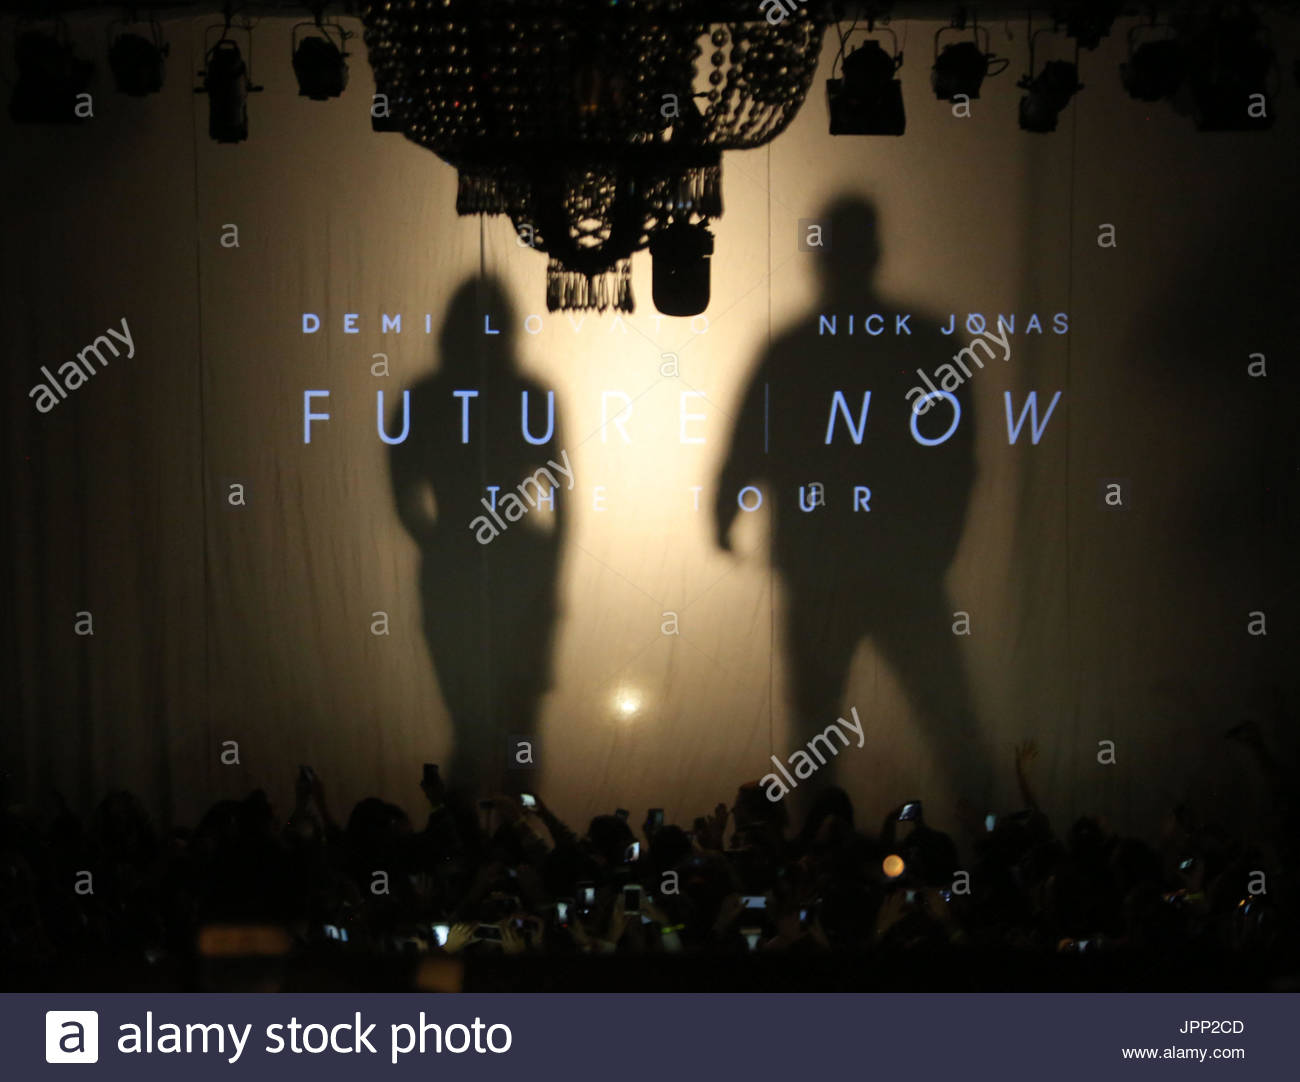 Nick jonas demi lovato demi lovato and nick jonas future now stock nick jonas demi lovato demi lovato and nick jonas future now special vip concert held for fans at irving plaza in new york city m4hsunfo